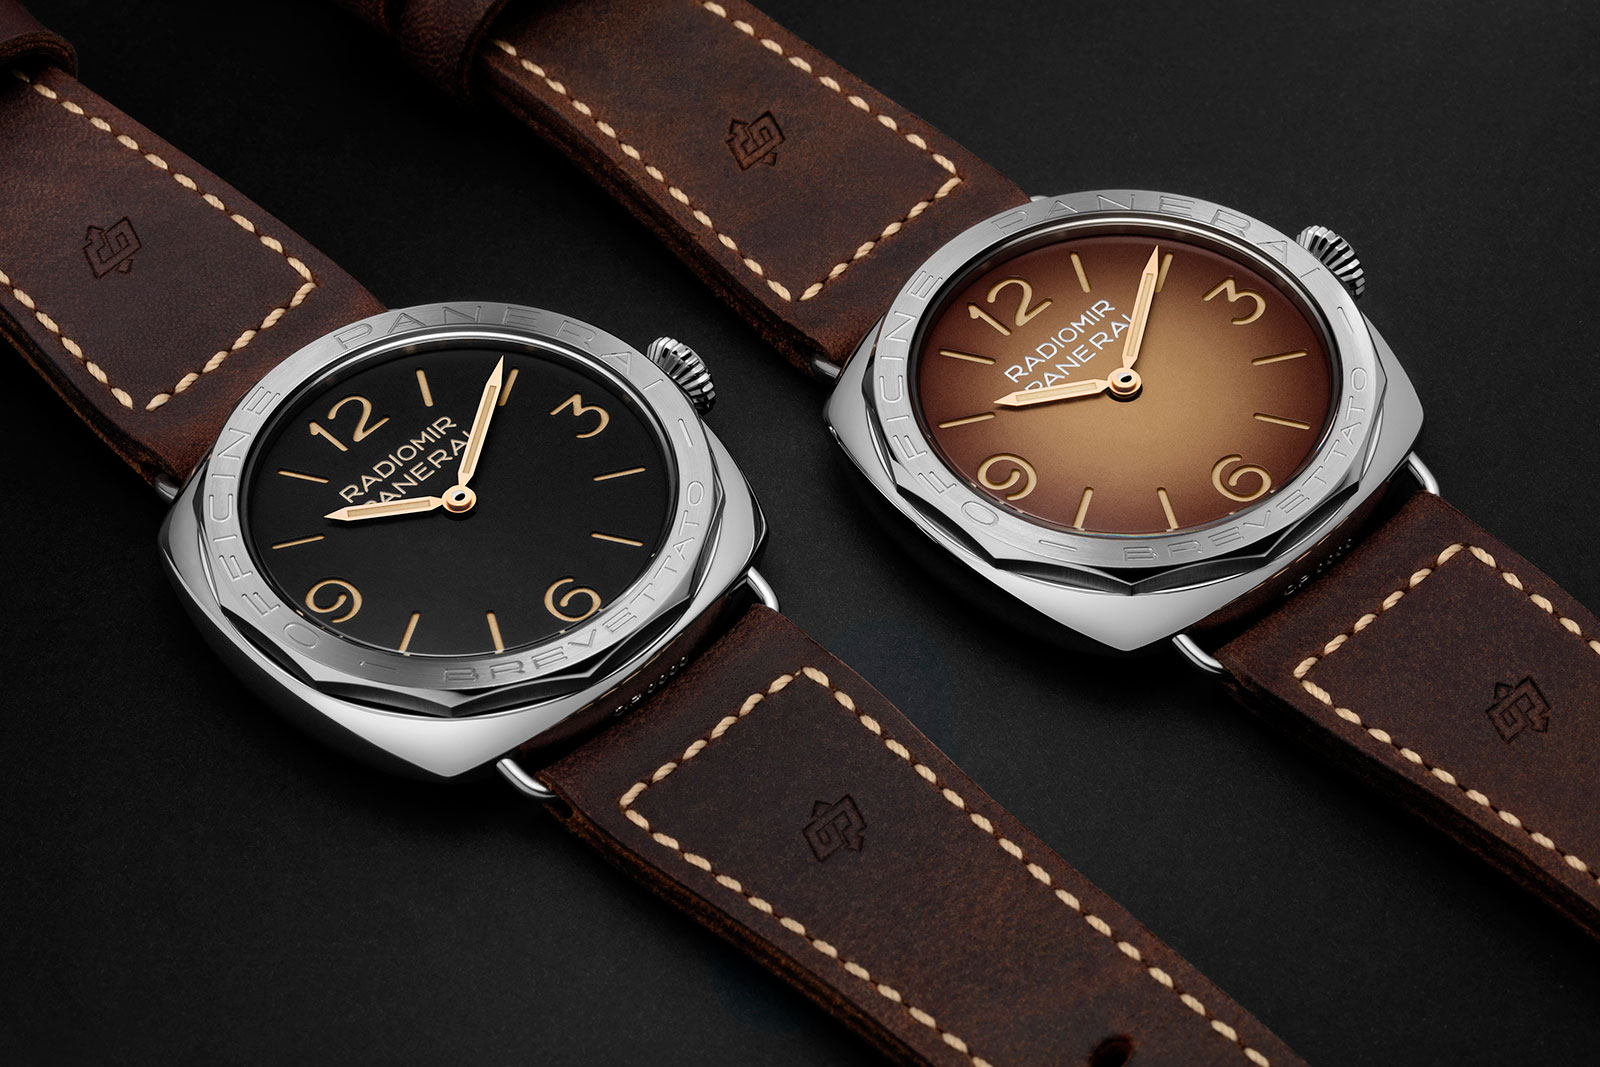 Panerai Radiomir 3 Days Acciaio PAM685 and PAM687